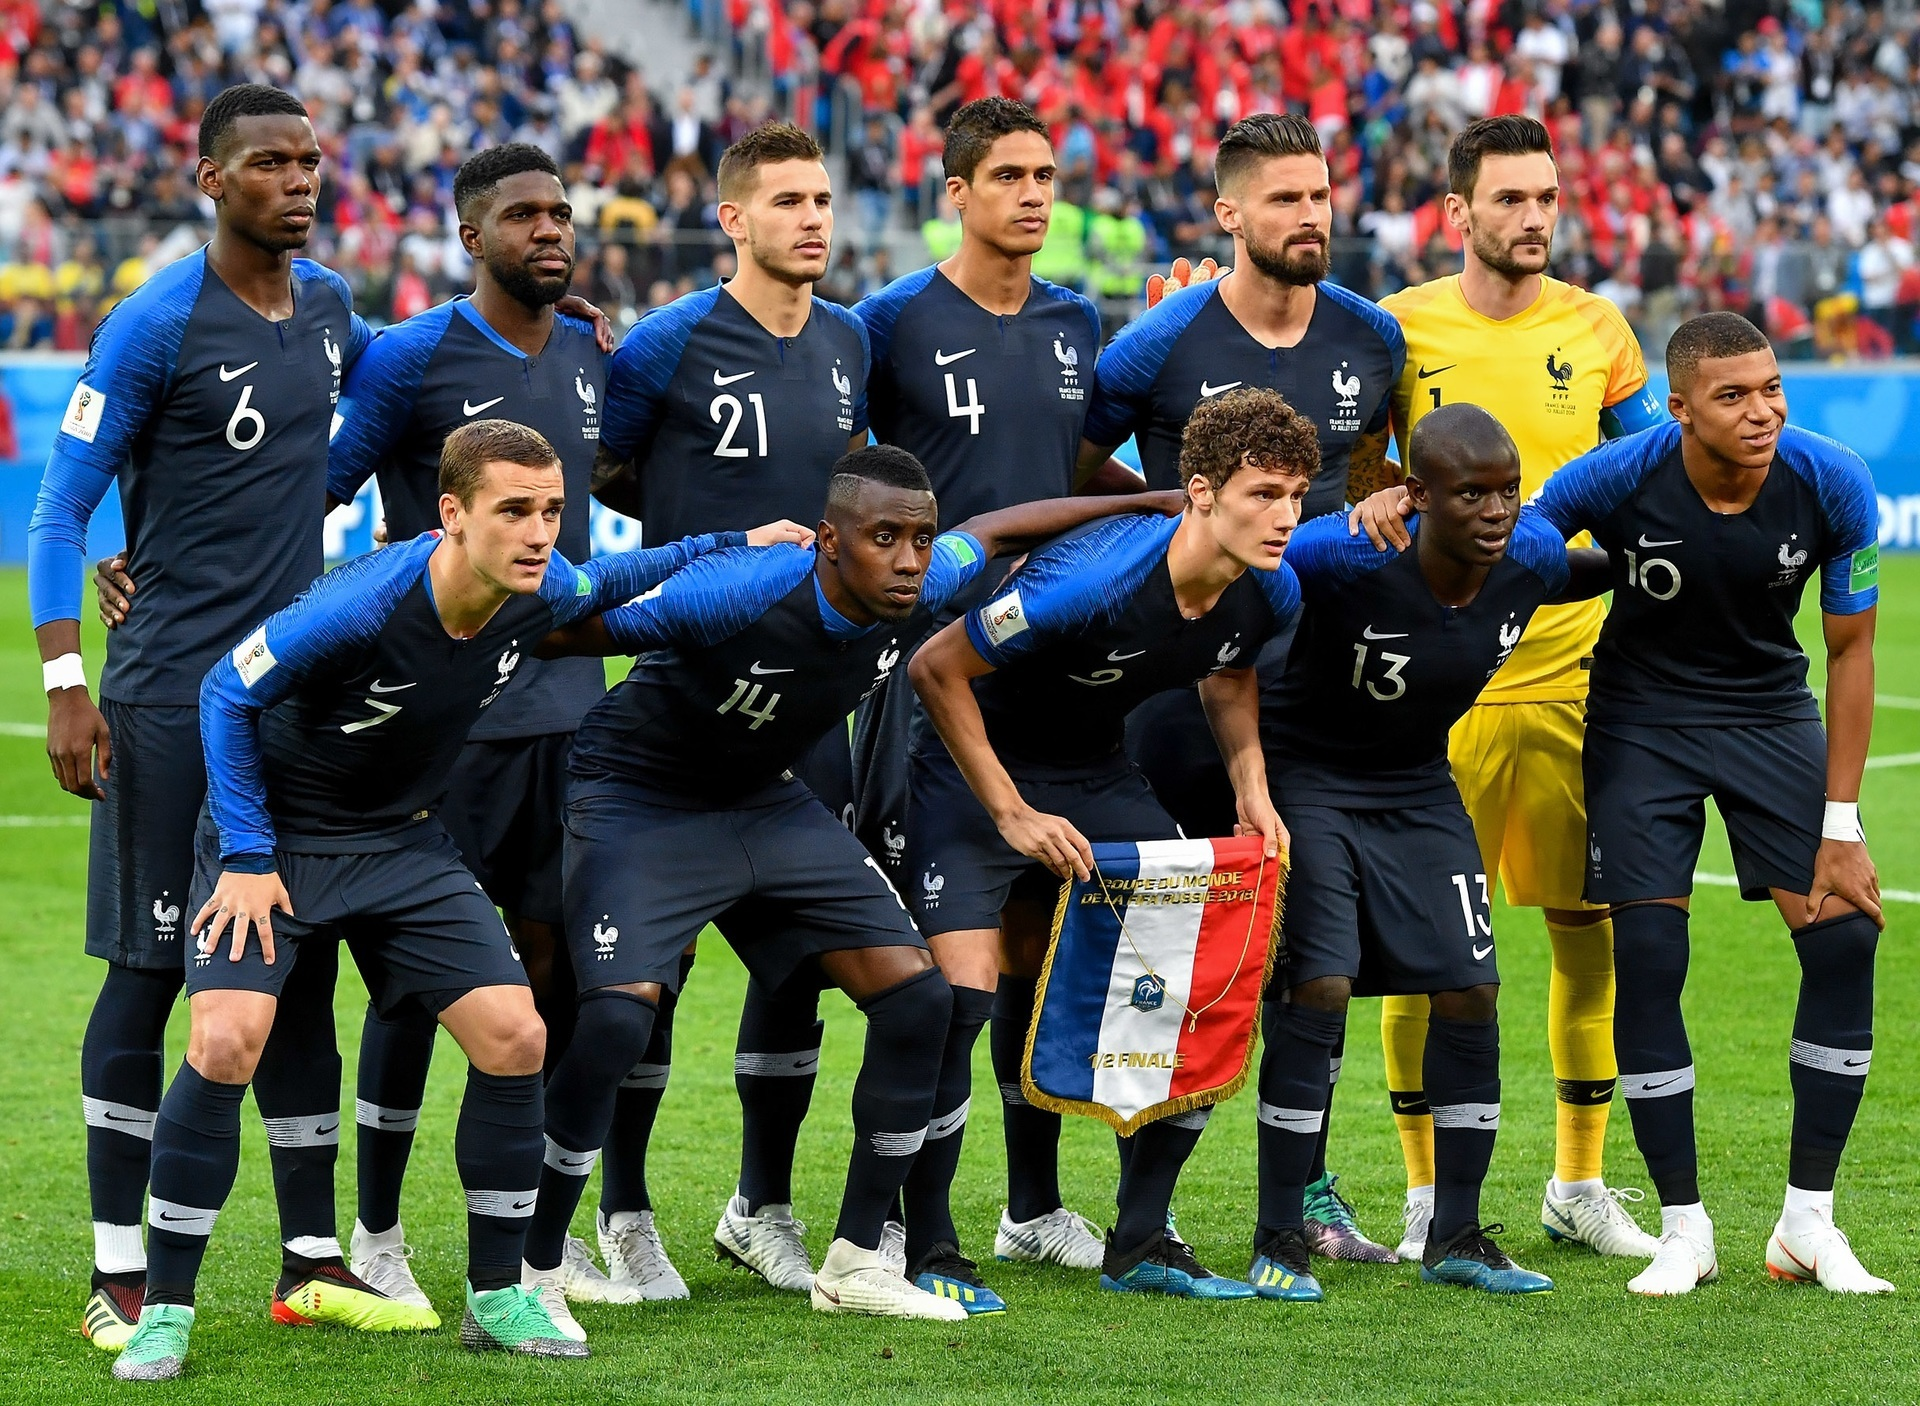 France-2018-NIKE-world-cup-home-kit-navy-navy-navy-line-up.jpg